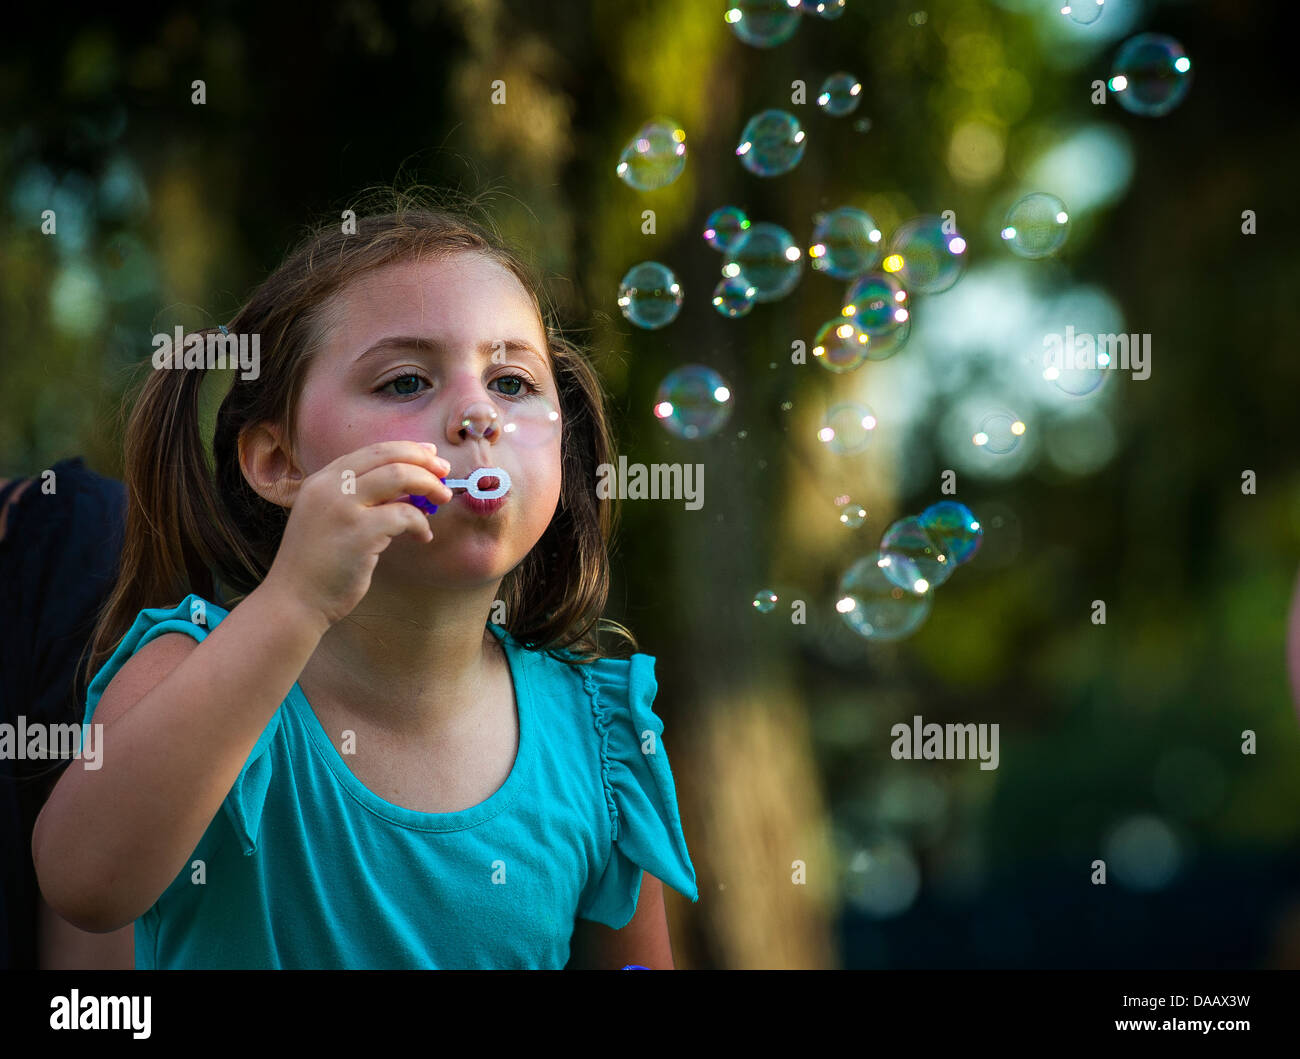 Jenna Calafiore, daughter of Jeff Calafiore, Zero to Never band member, blows bubbles, during the 2013 Freedom Fest - Stock Image